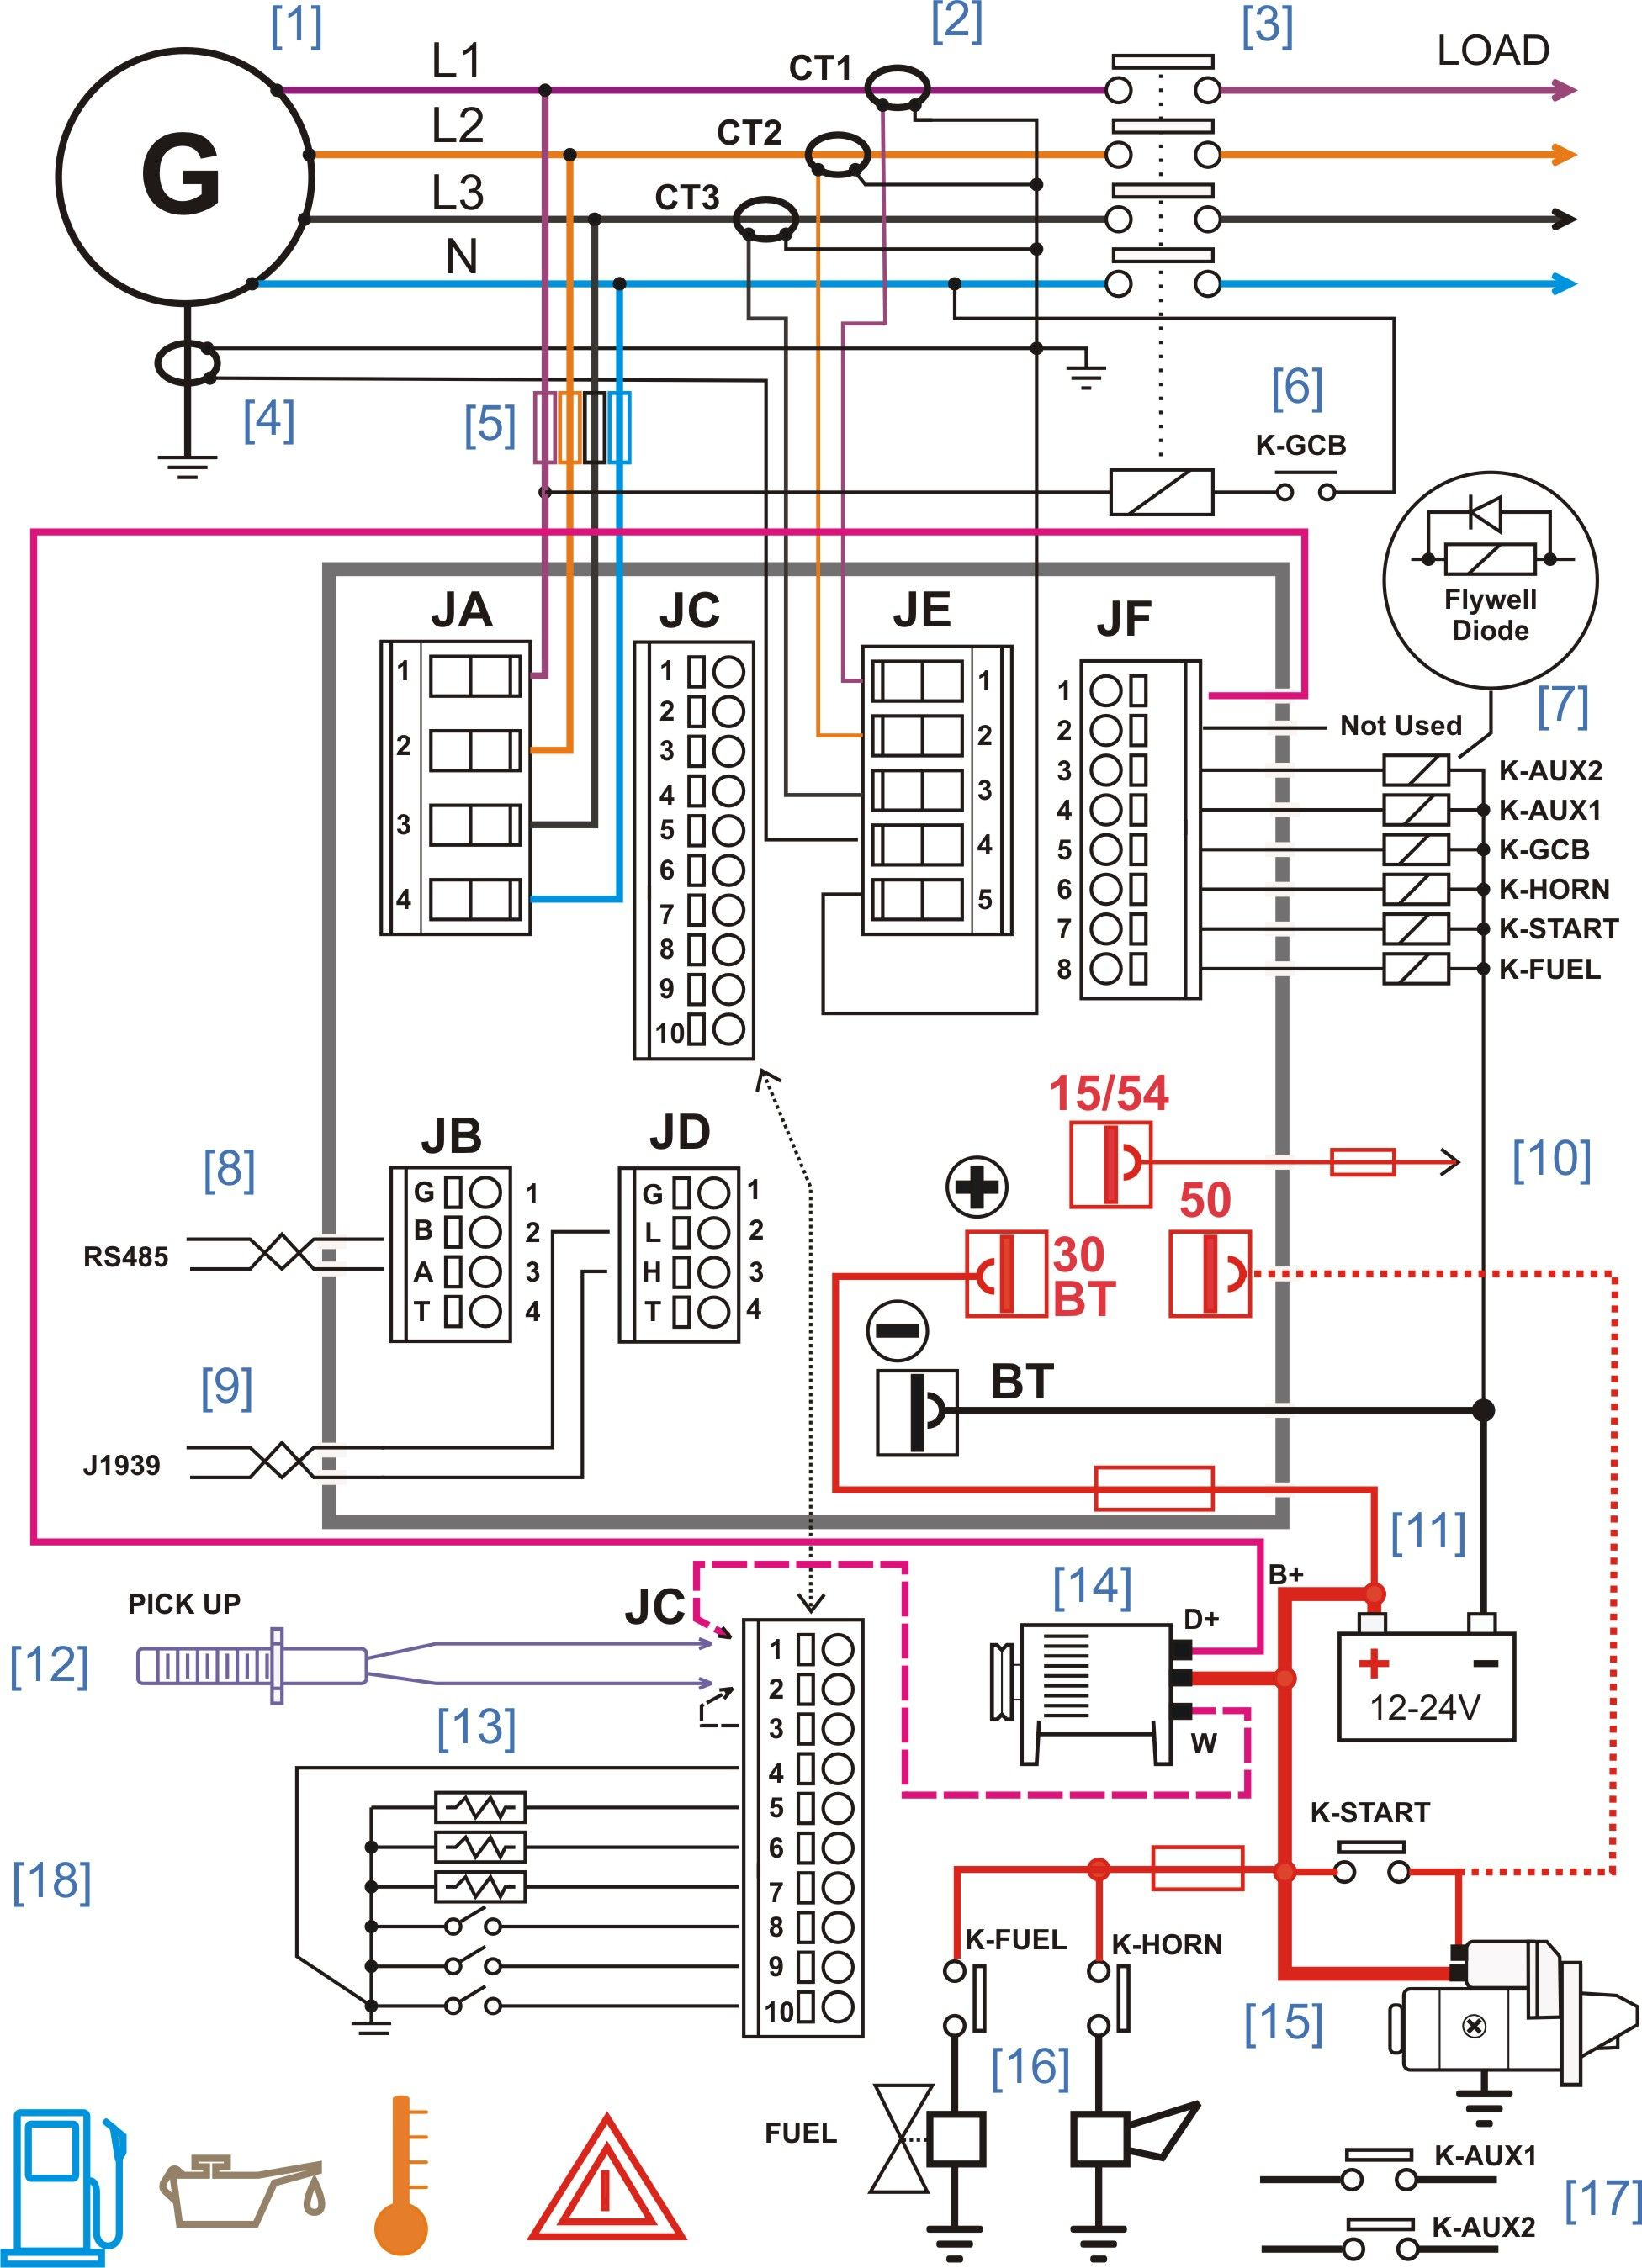 transfer switch wiring diagram Collection-Diesel Generator Control Panel Wiring Diagram 7-q